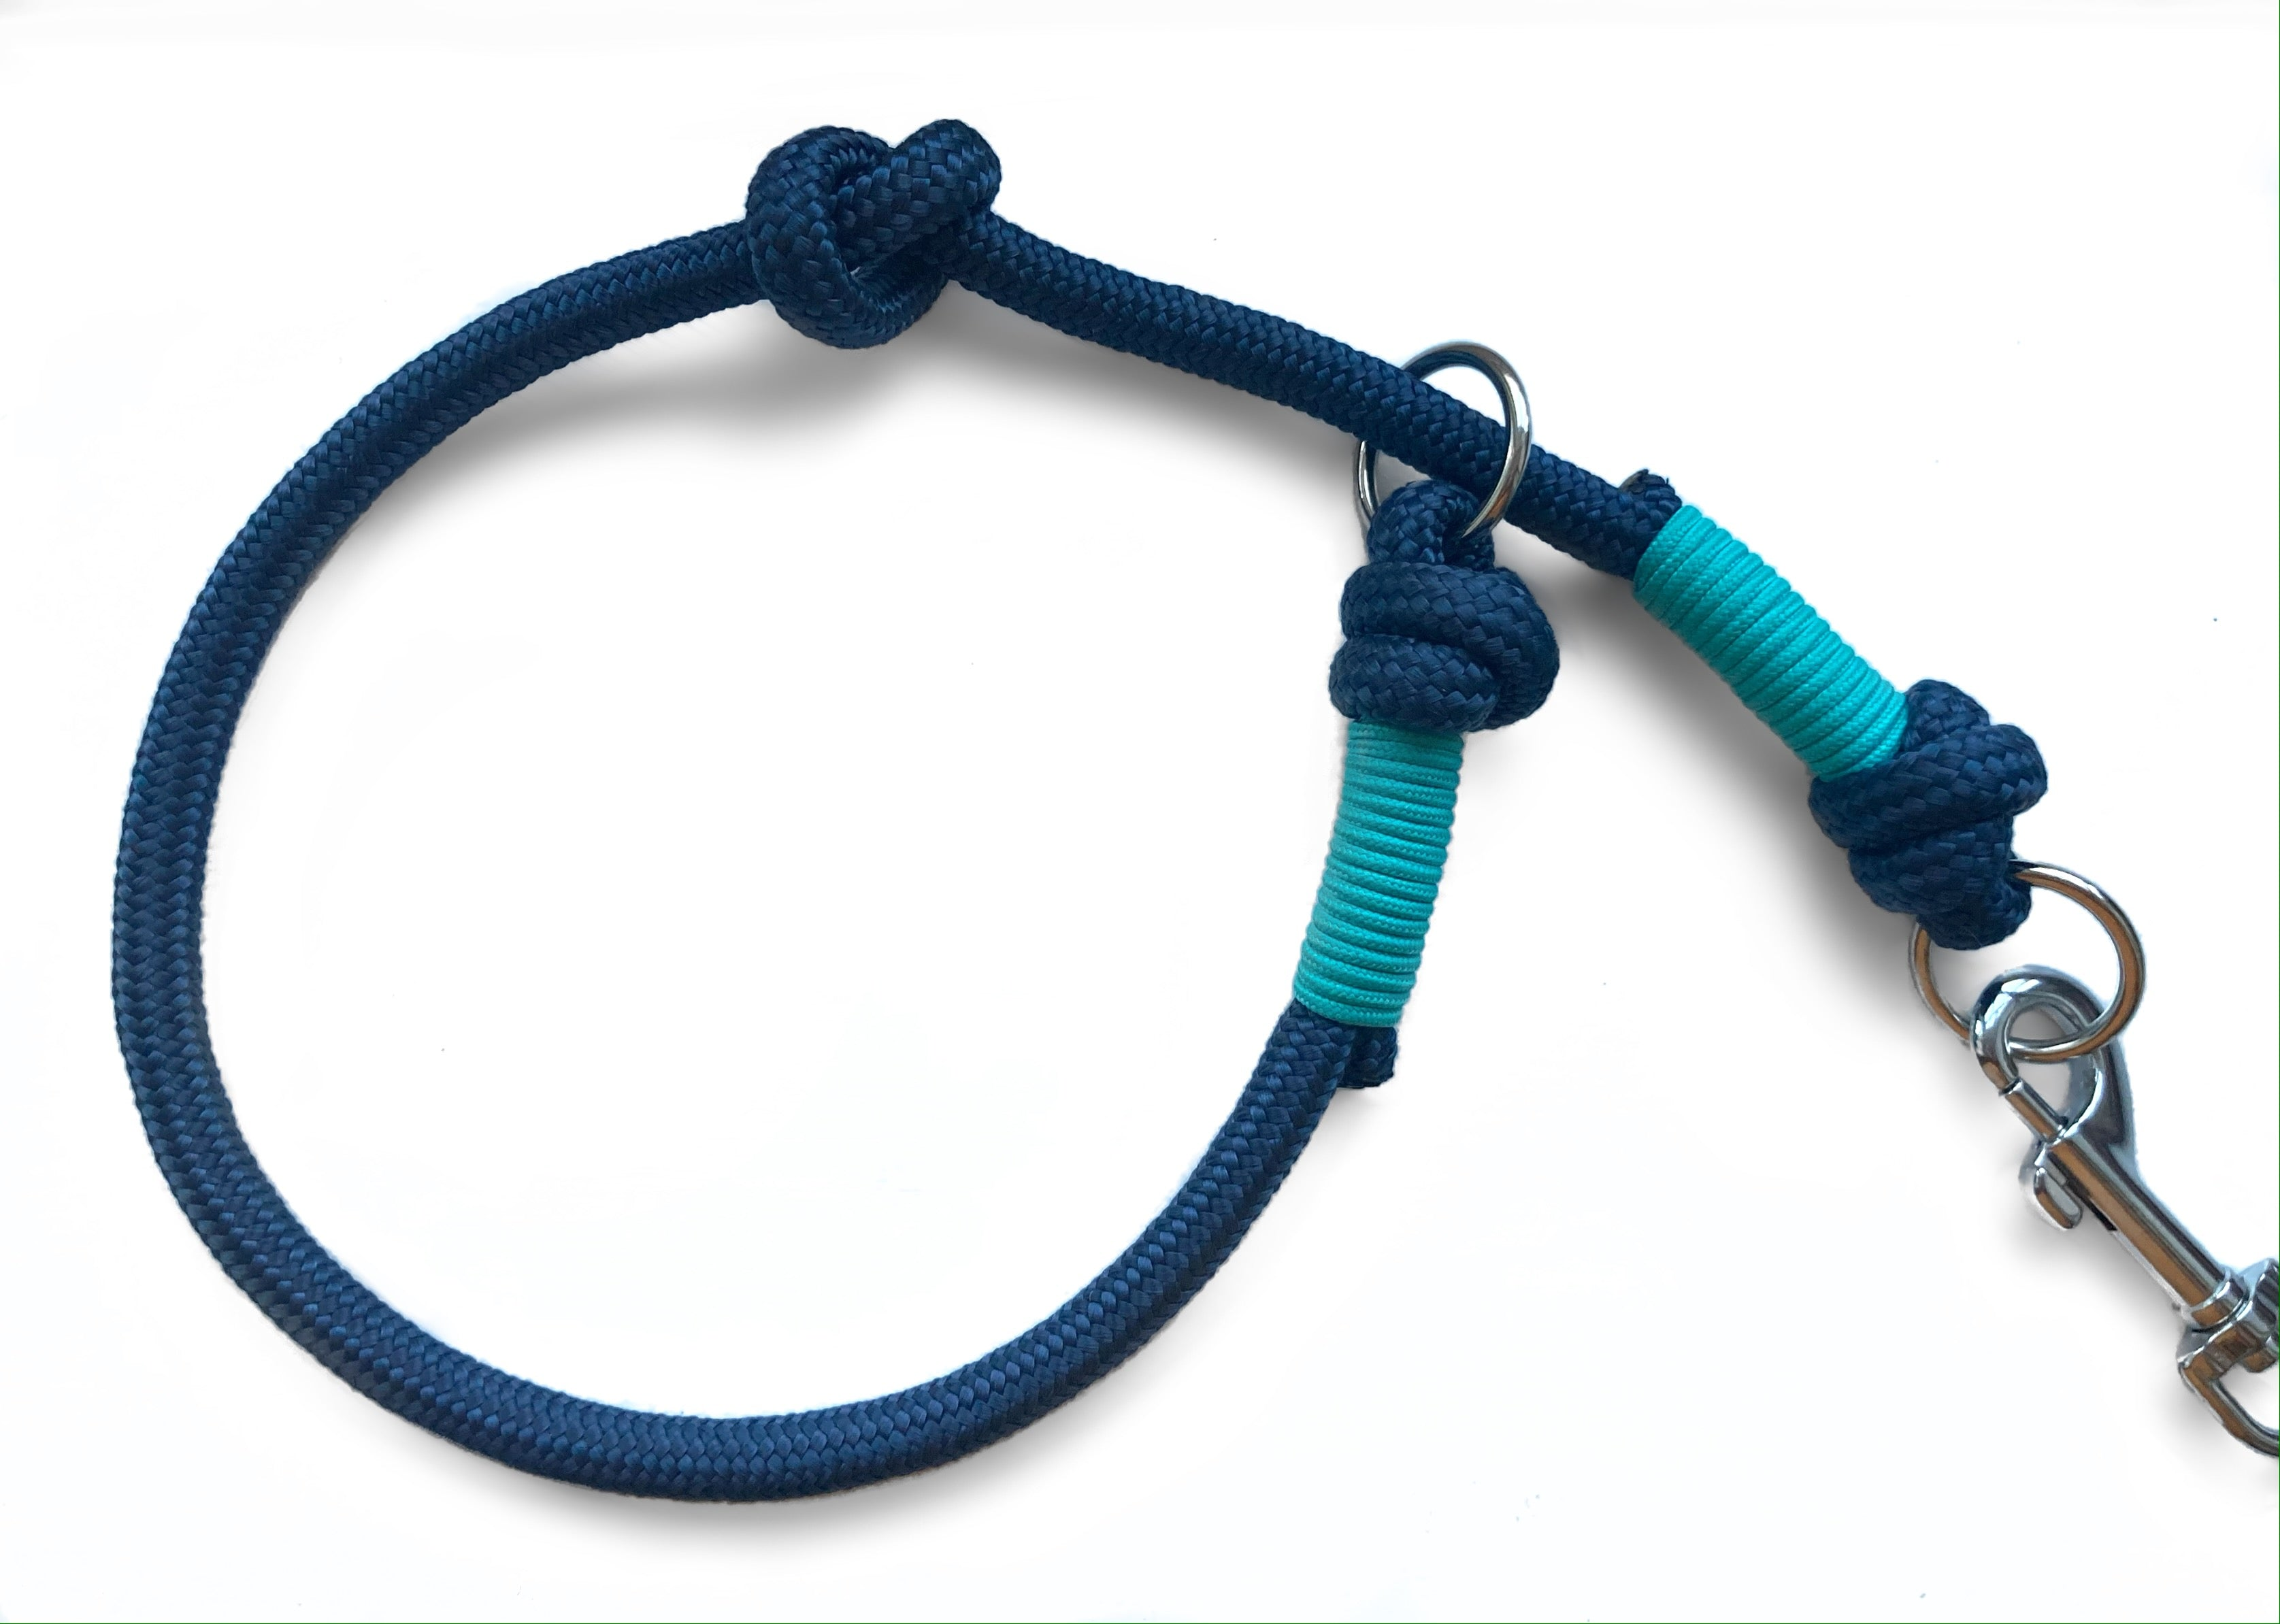 NEW - Customisable Navy Slip Lead Collar Attachment